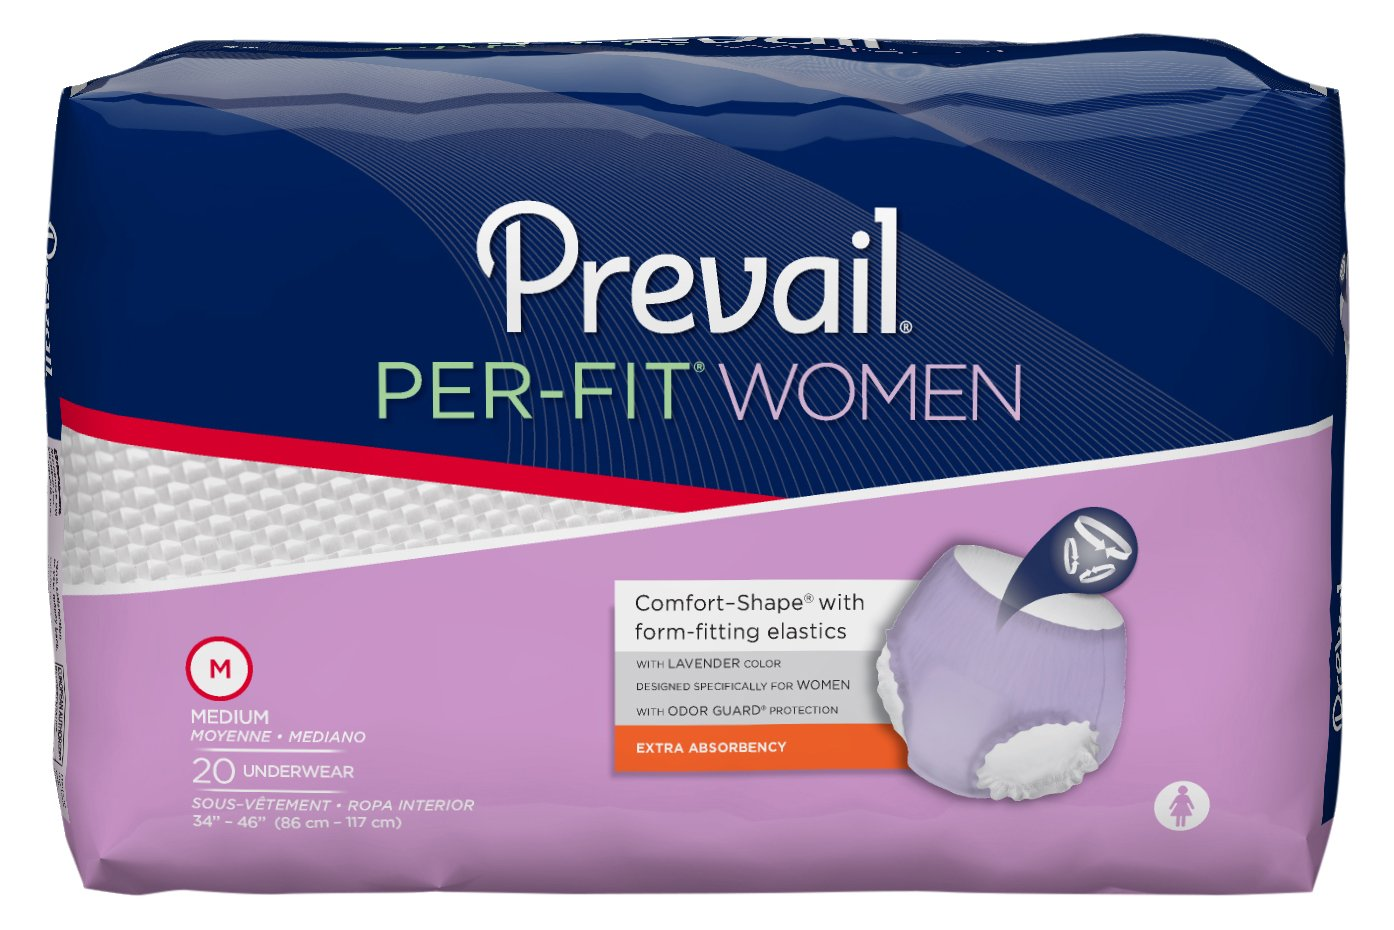 Amazon.com: Prevail Per-Fit Extra Absorbency Incontinence Underwear for Women, Large, 72-Count: Health & Personal Care